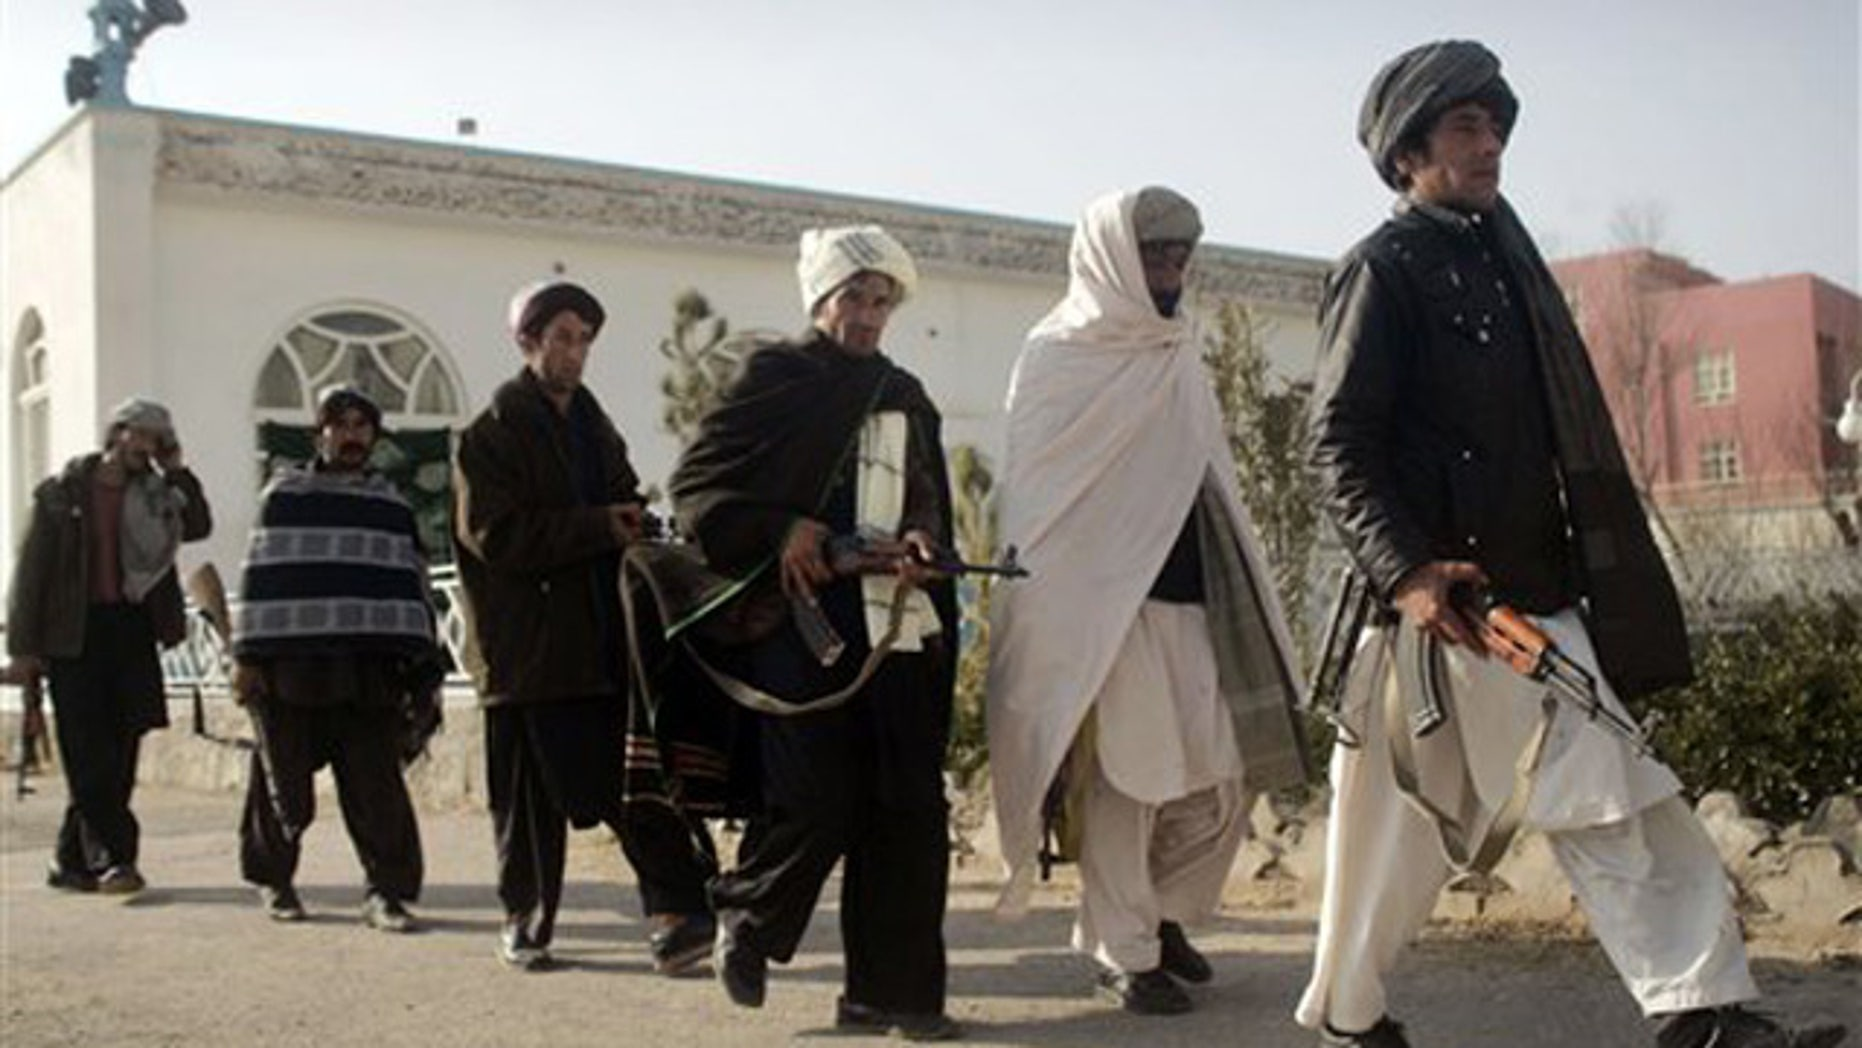 Dec. 28, 2011: Former Taliban  militants walk to hand over their weapons during a joining ceremony with the Afghan government in Herat, Afghanistan.